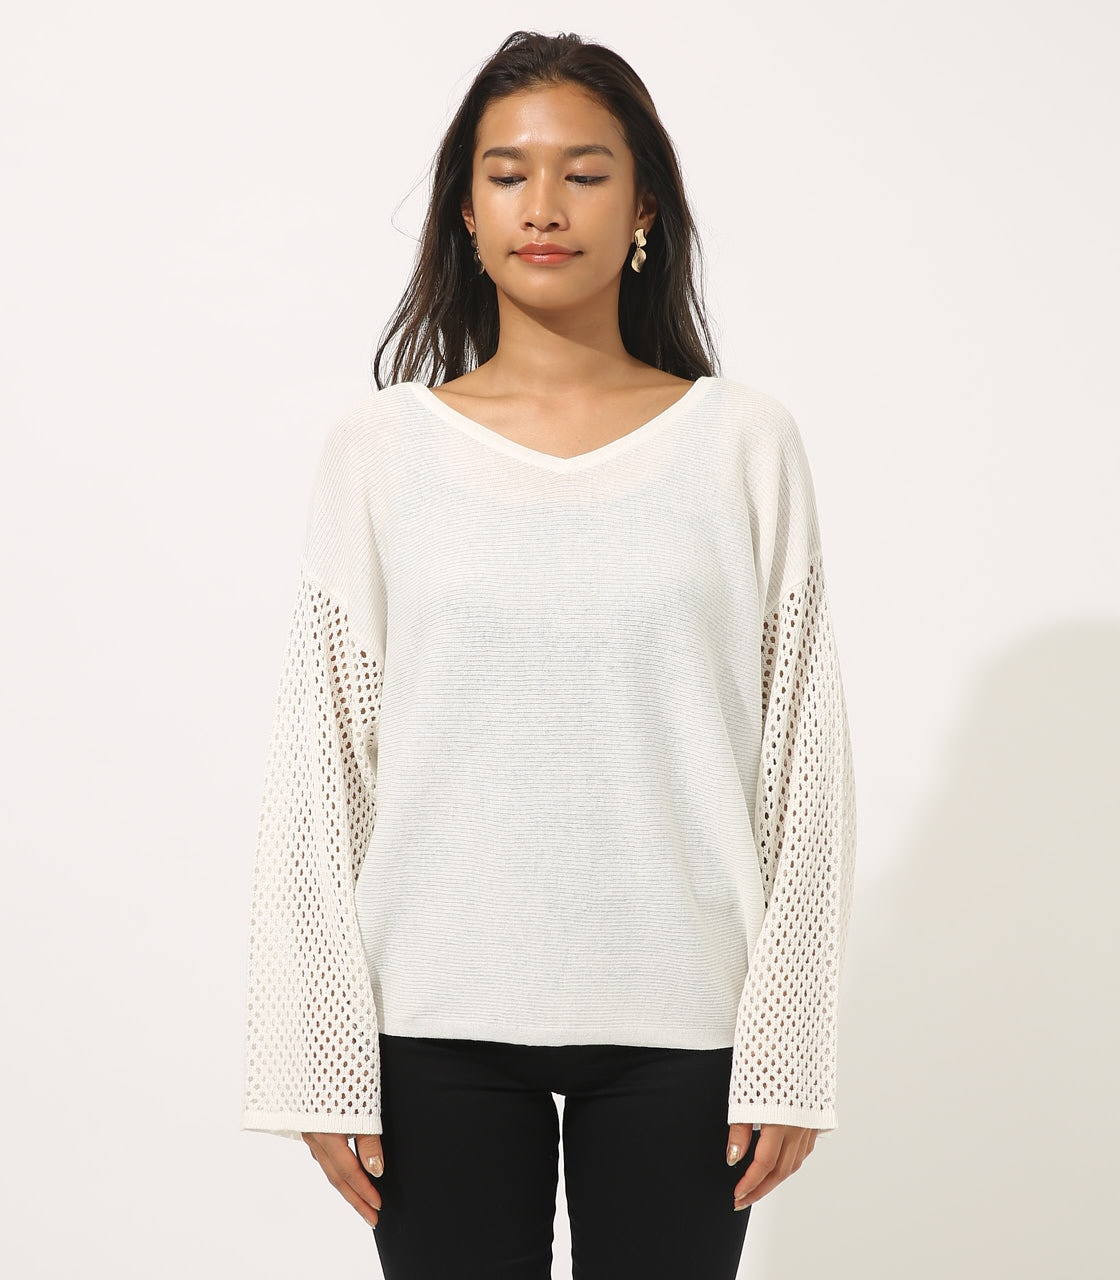 【AZUL BY MOUSSY】CROCHET SLEEVE KNIT TOPS 詳細画像 O/WHT 4